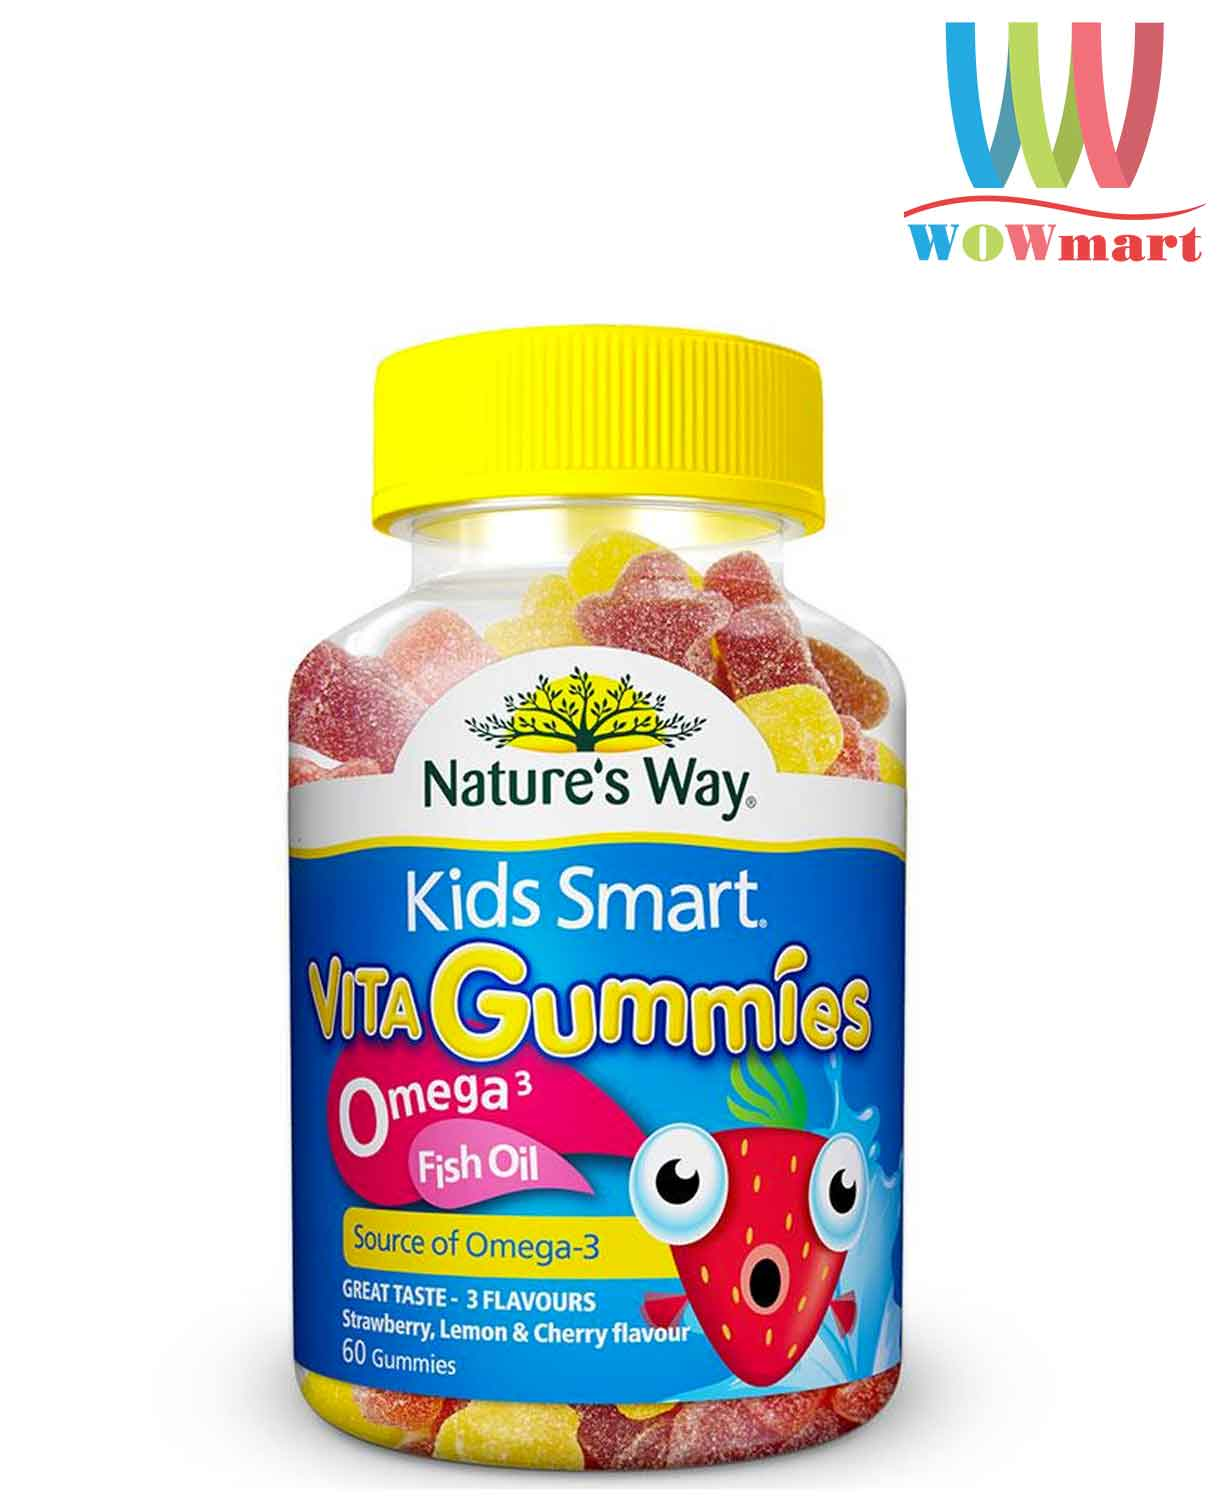 keo-deo-bo-sung-omega-3-natures-way-kids-smart-omega-3-fish-oil-60-gummies